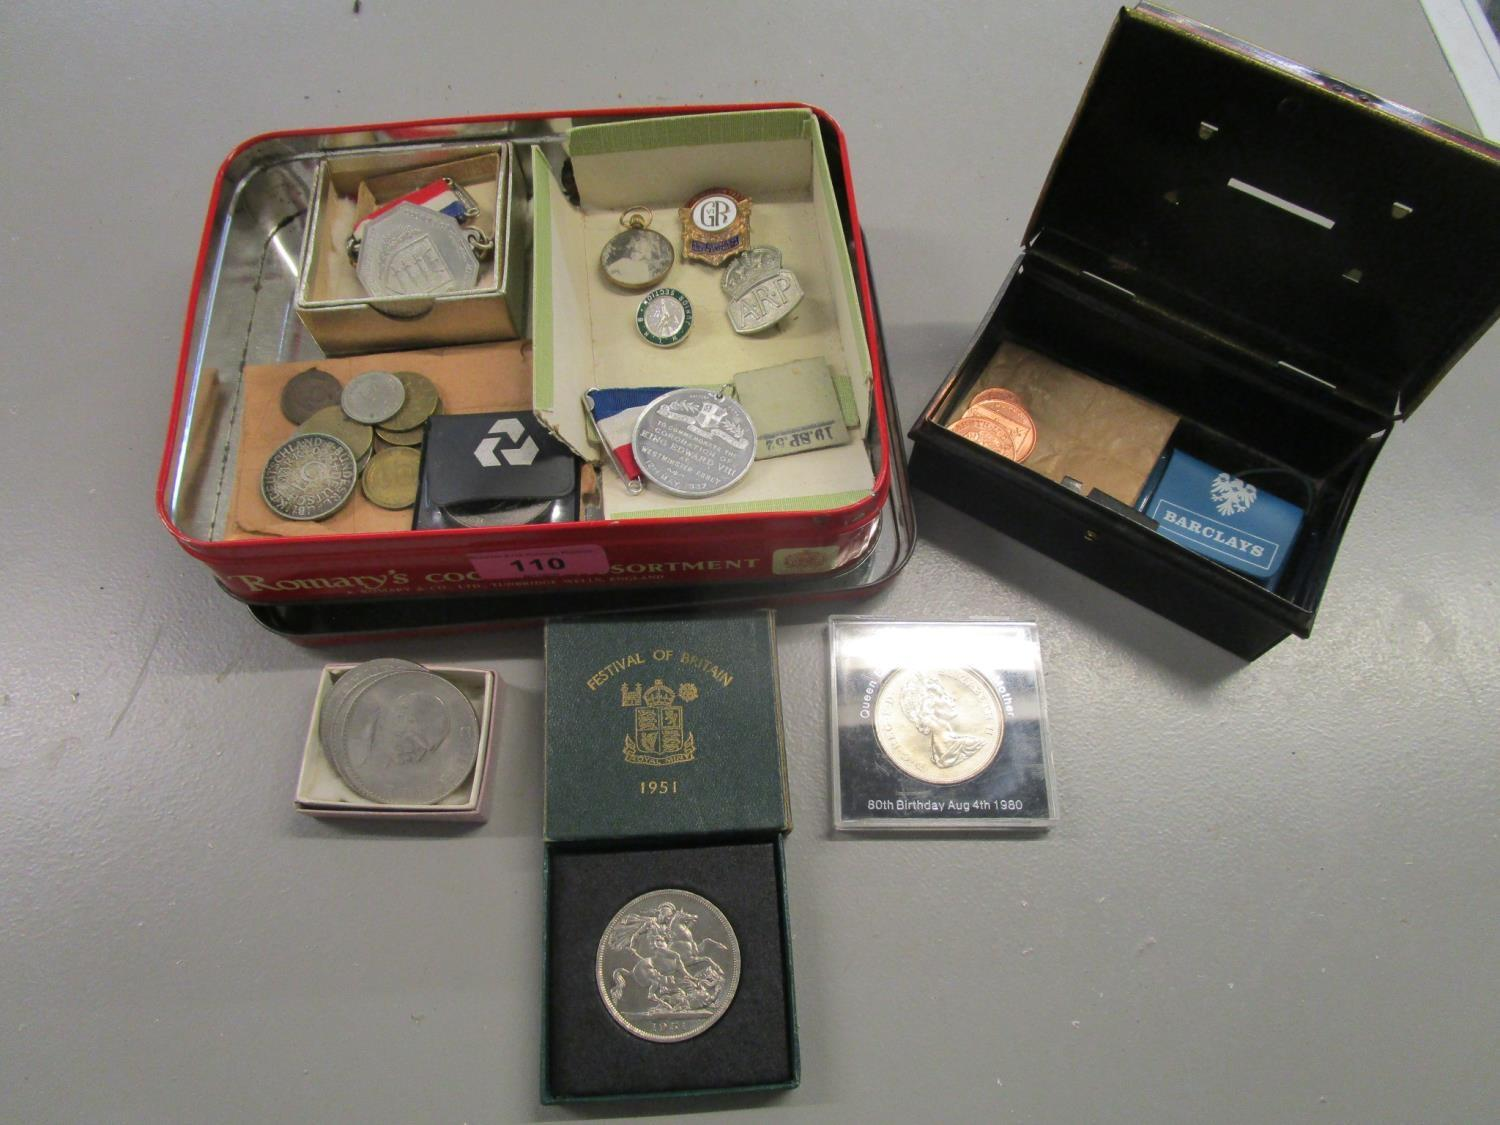 Lot 110 - A selection of coins, badges and commemorative medals